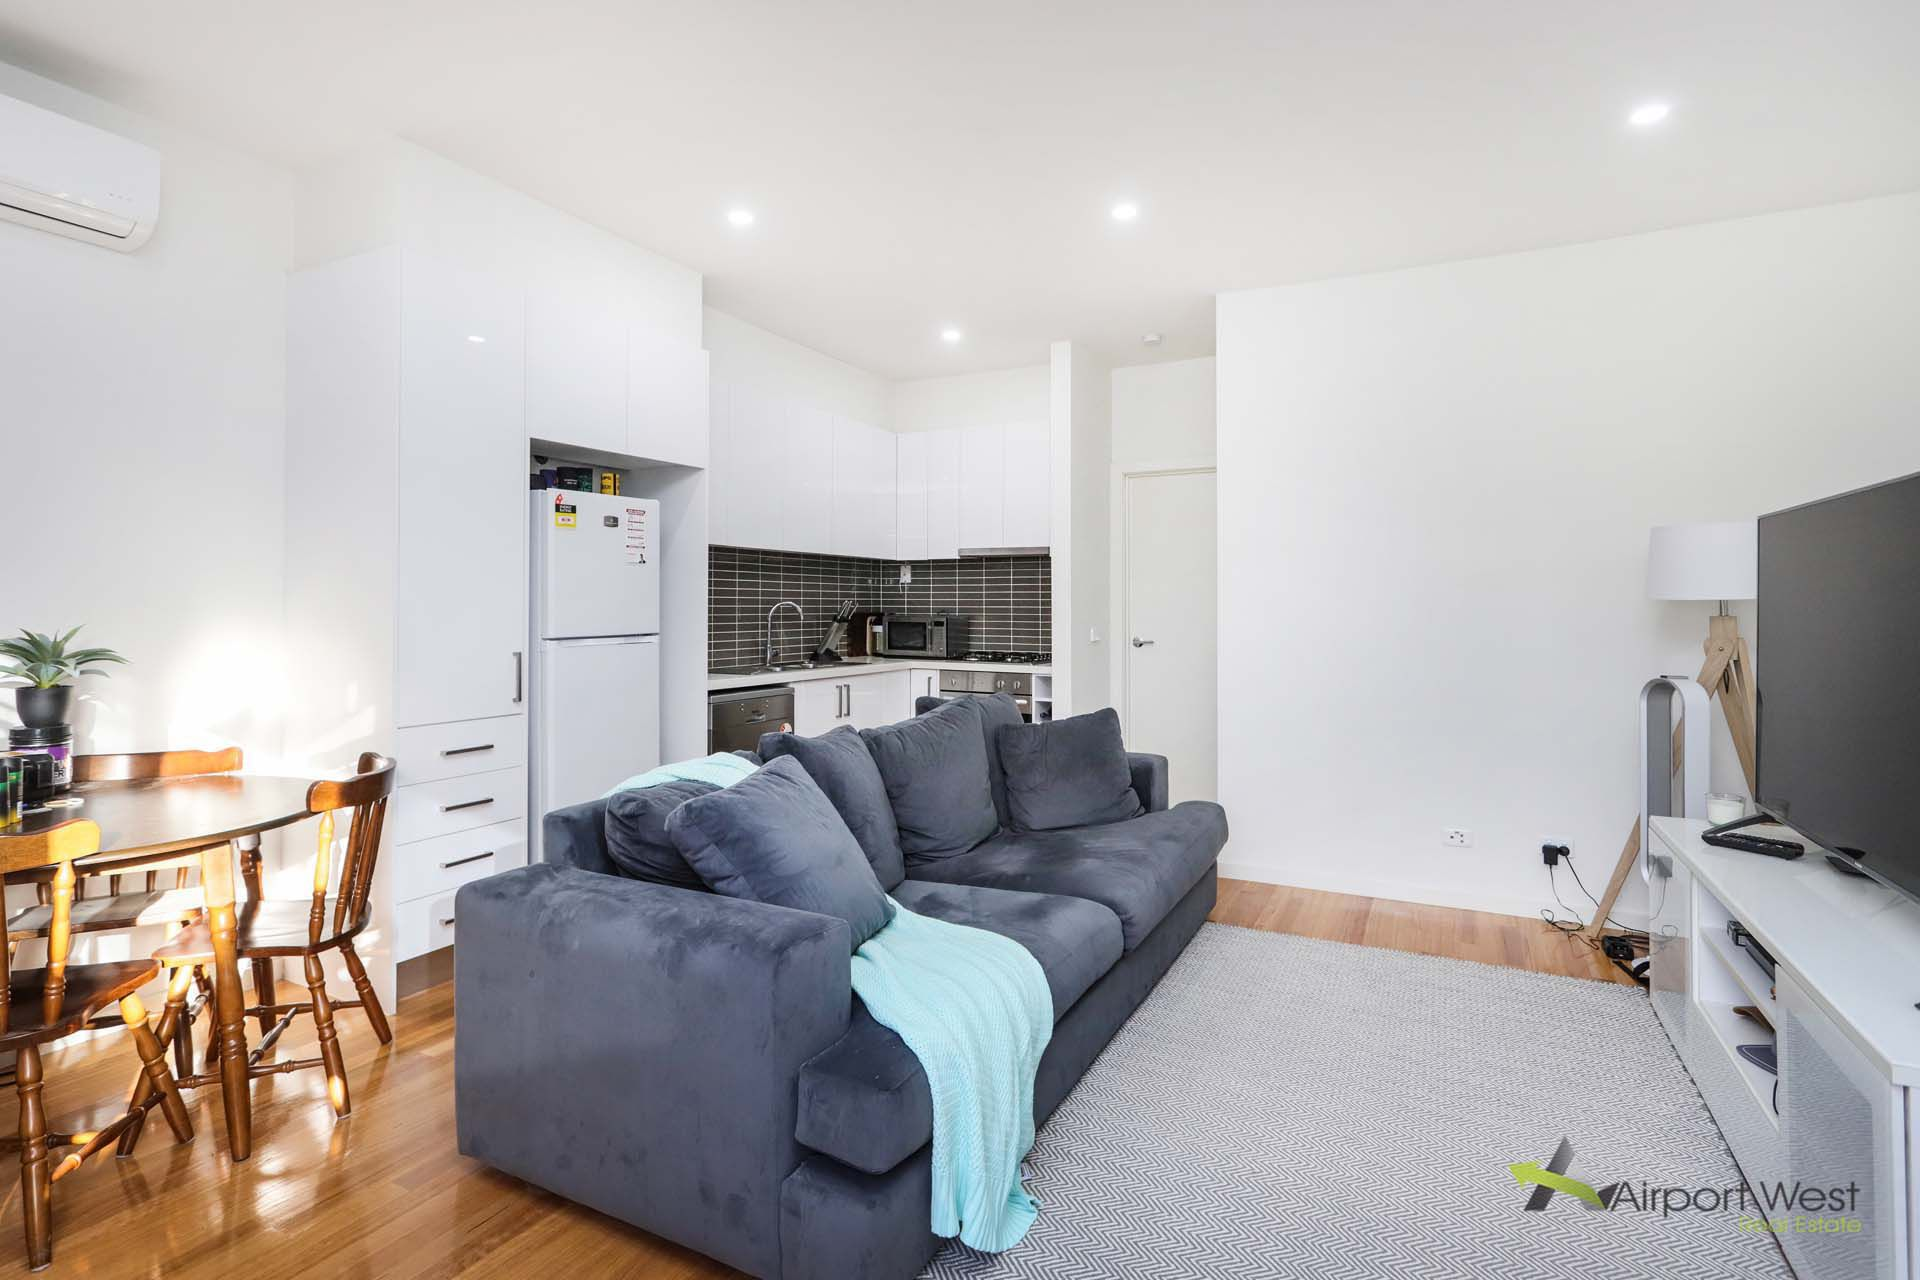 4 / 137 Bowes Avenue, Airport West